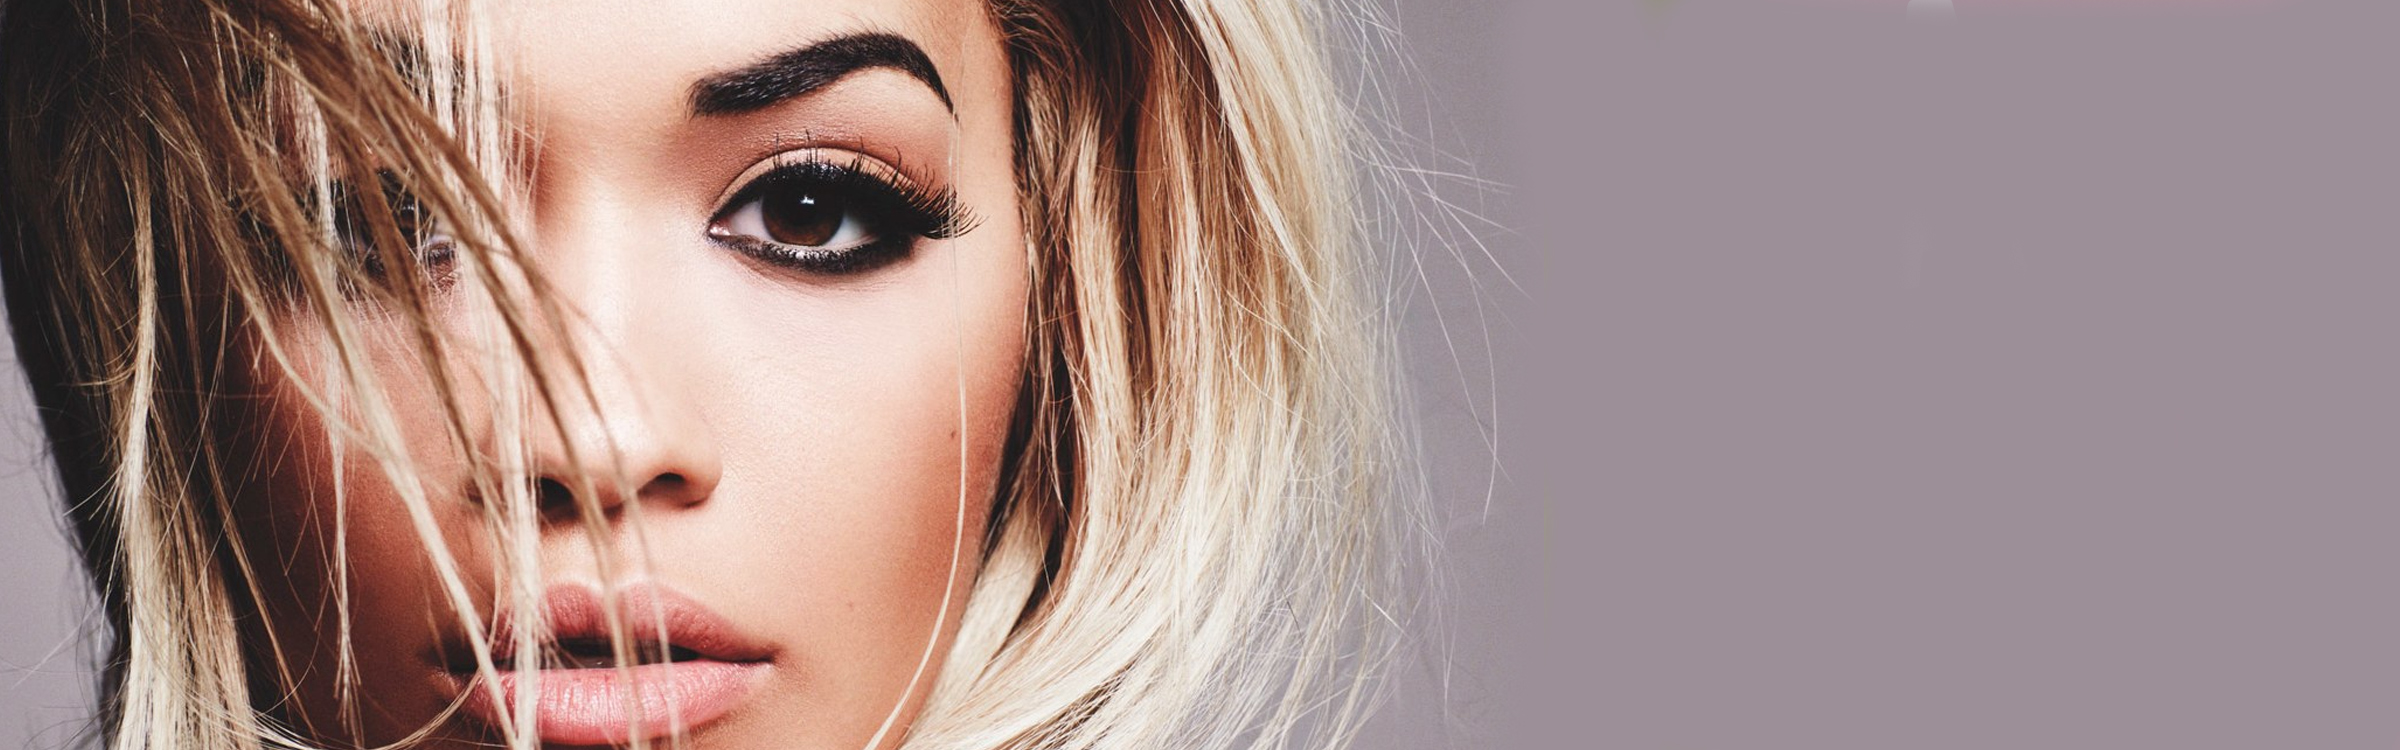 Rita ora proud   header